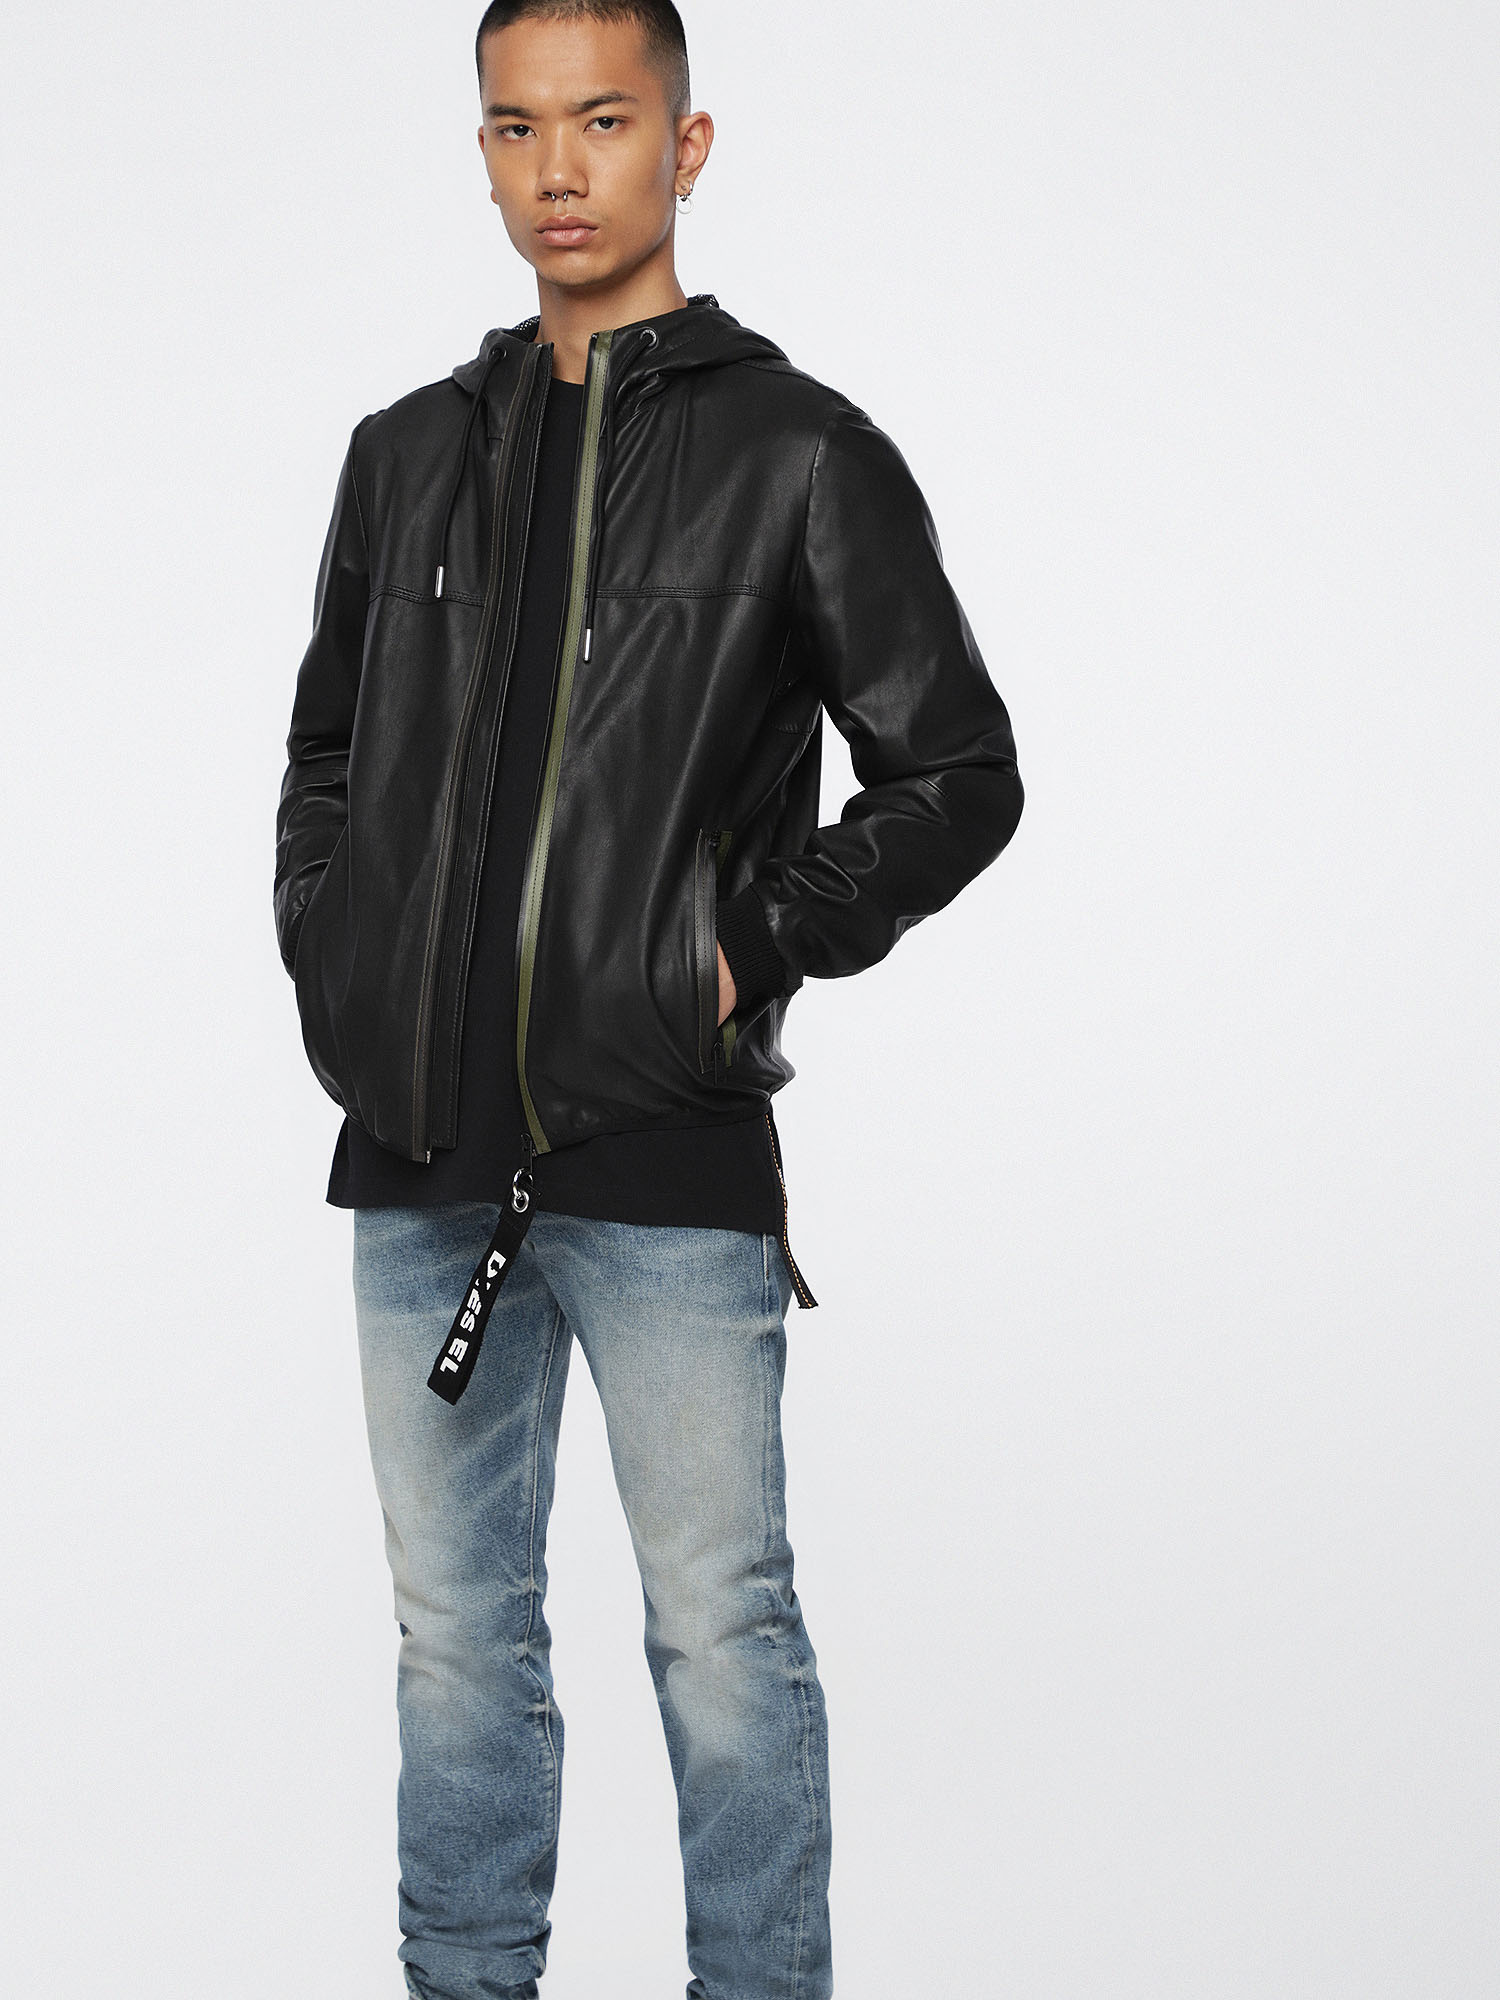 Diesel - L-TECH,  - Leather jackets - Image 1